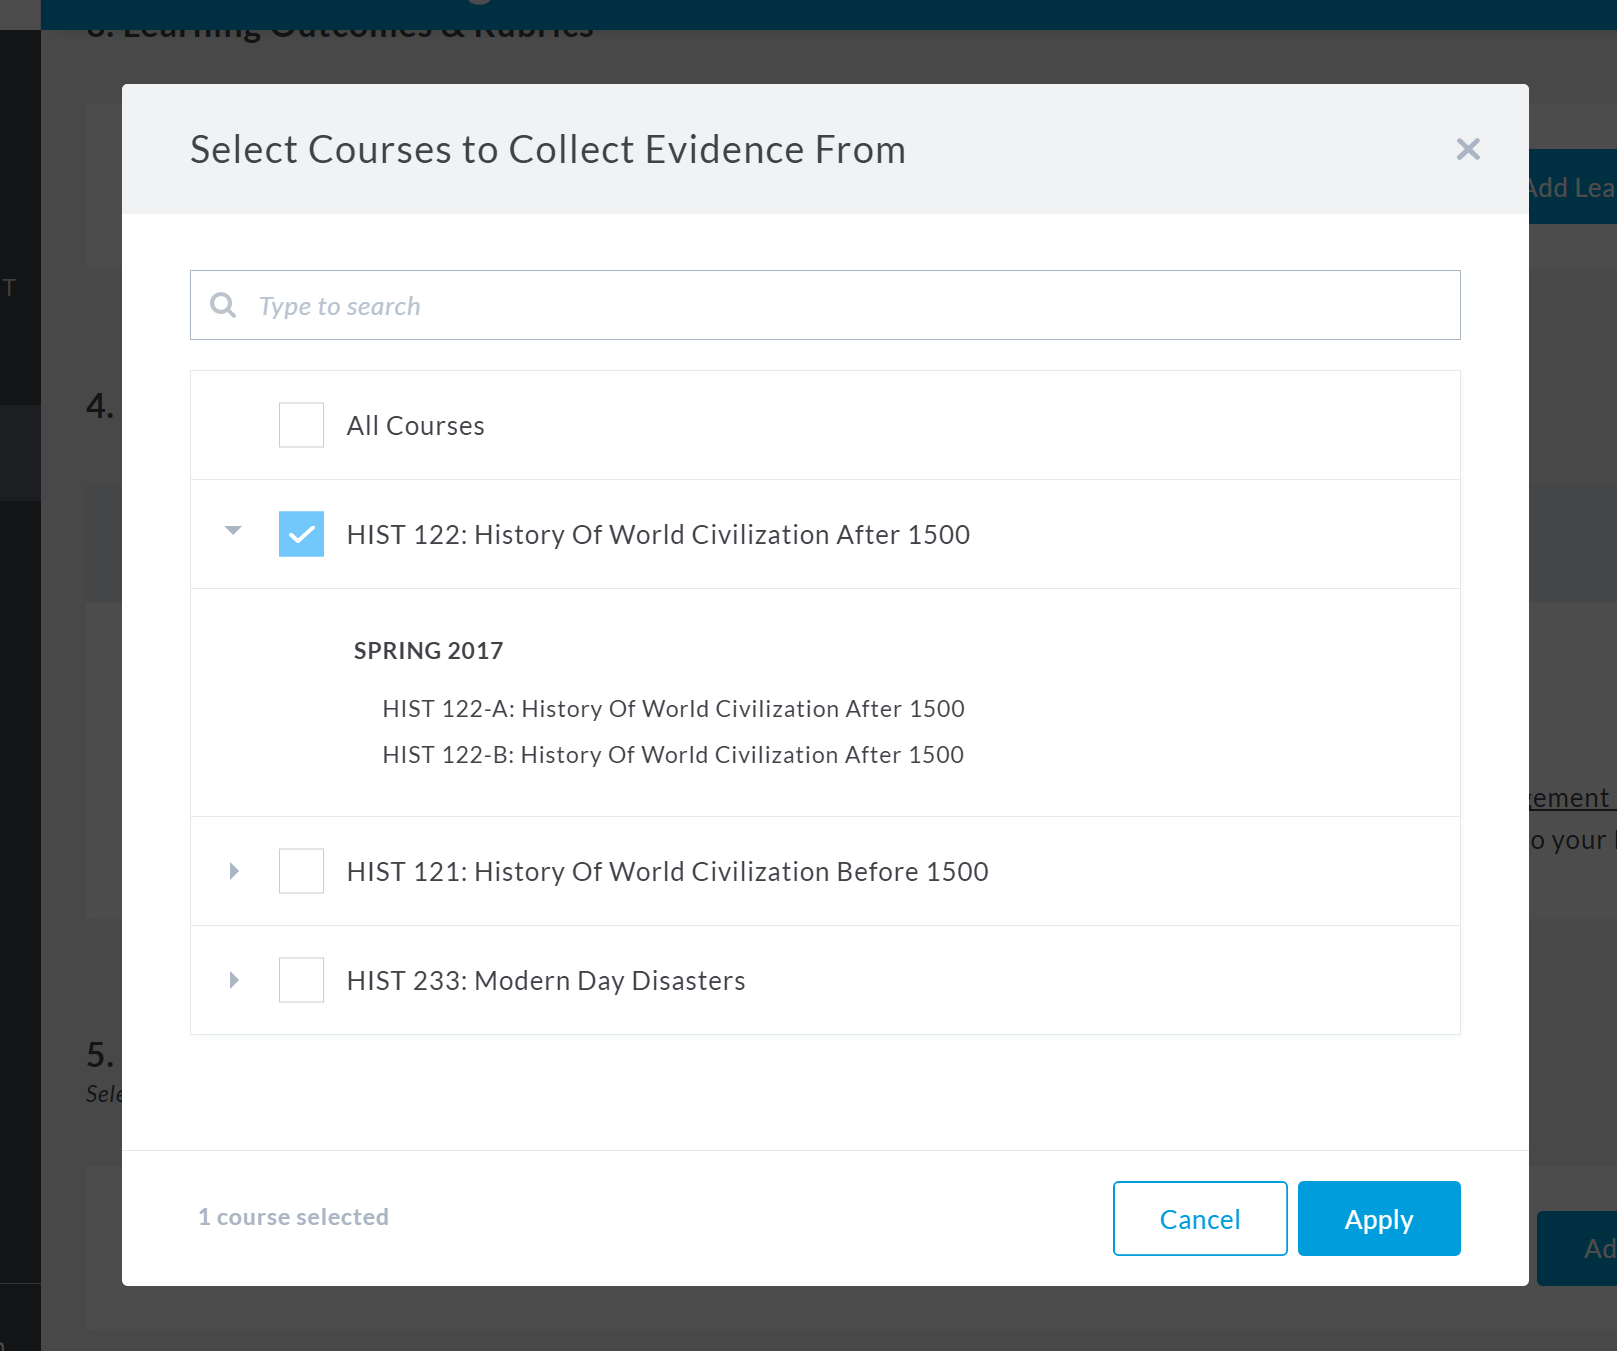 Select Courses to Collect Evidence From